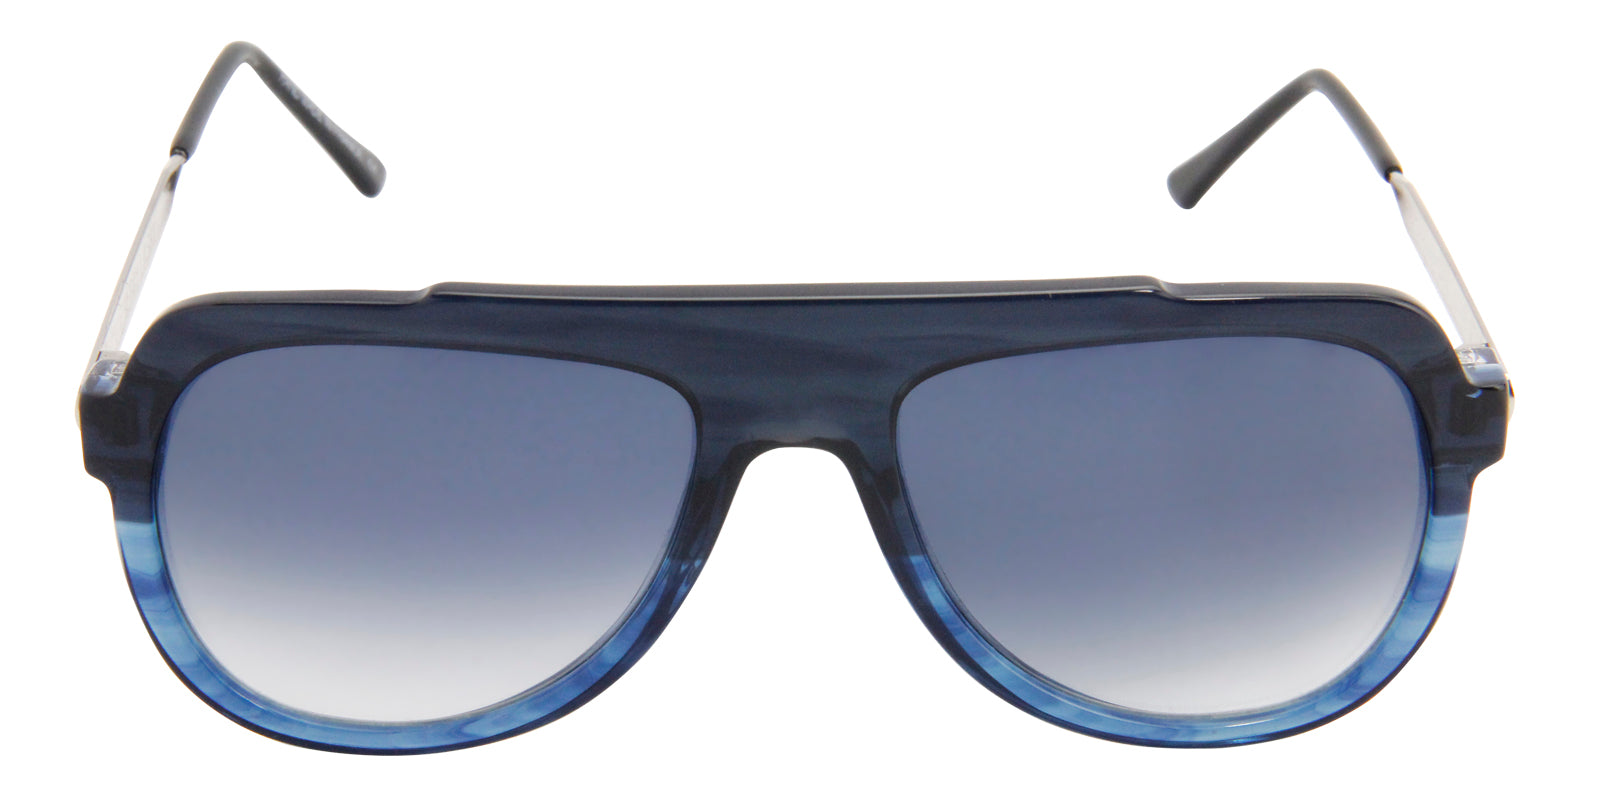 Thierry Lasry - Staminy Blue Aviator Men, Women Sunglasses - 58mm